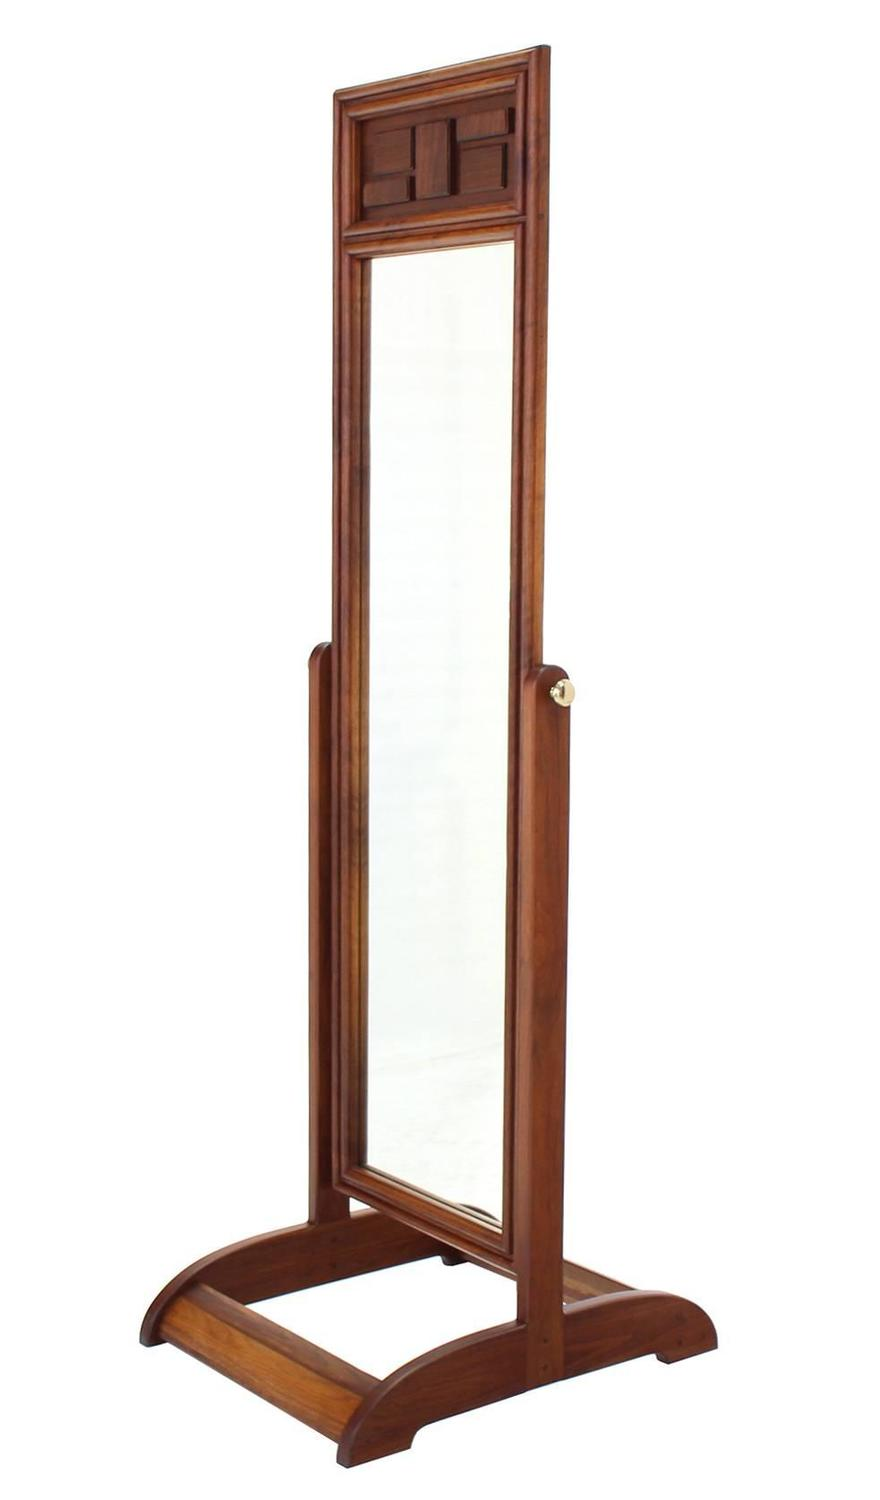 Walnut cheval mirror for sale at 1stdibs for Floor length mirror for sale